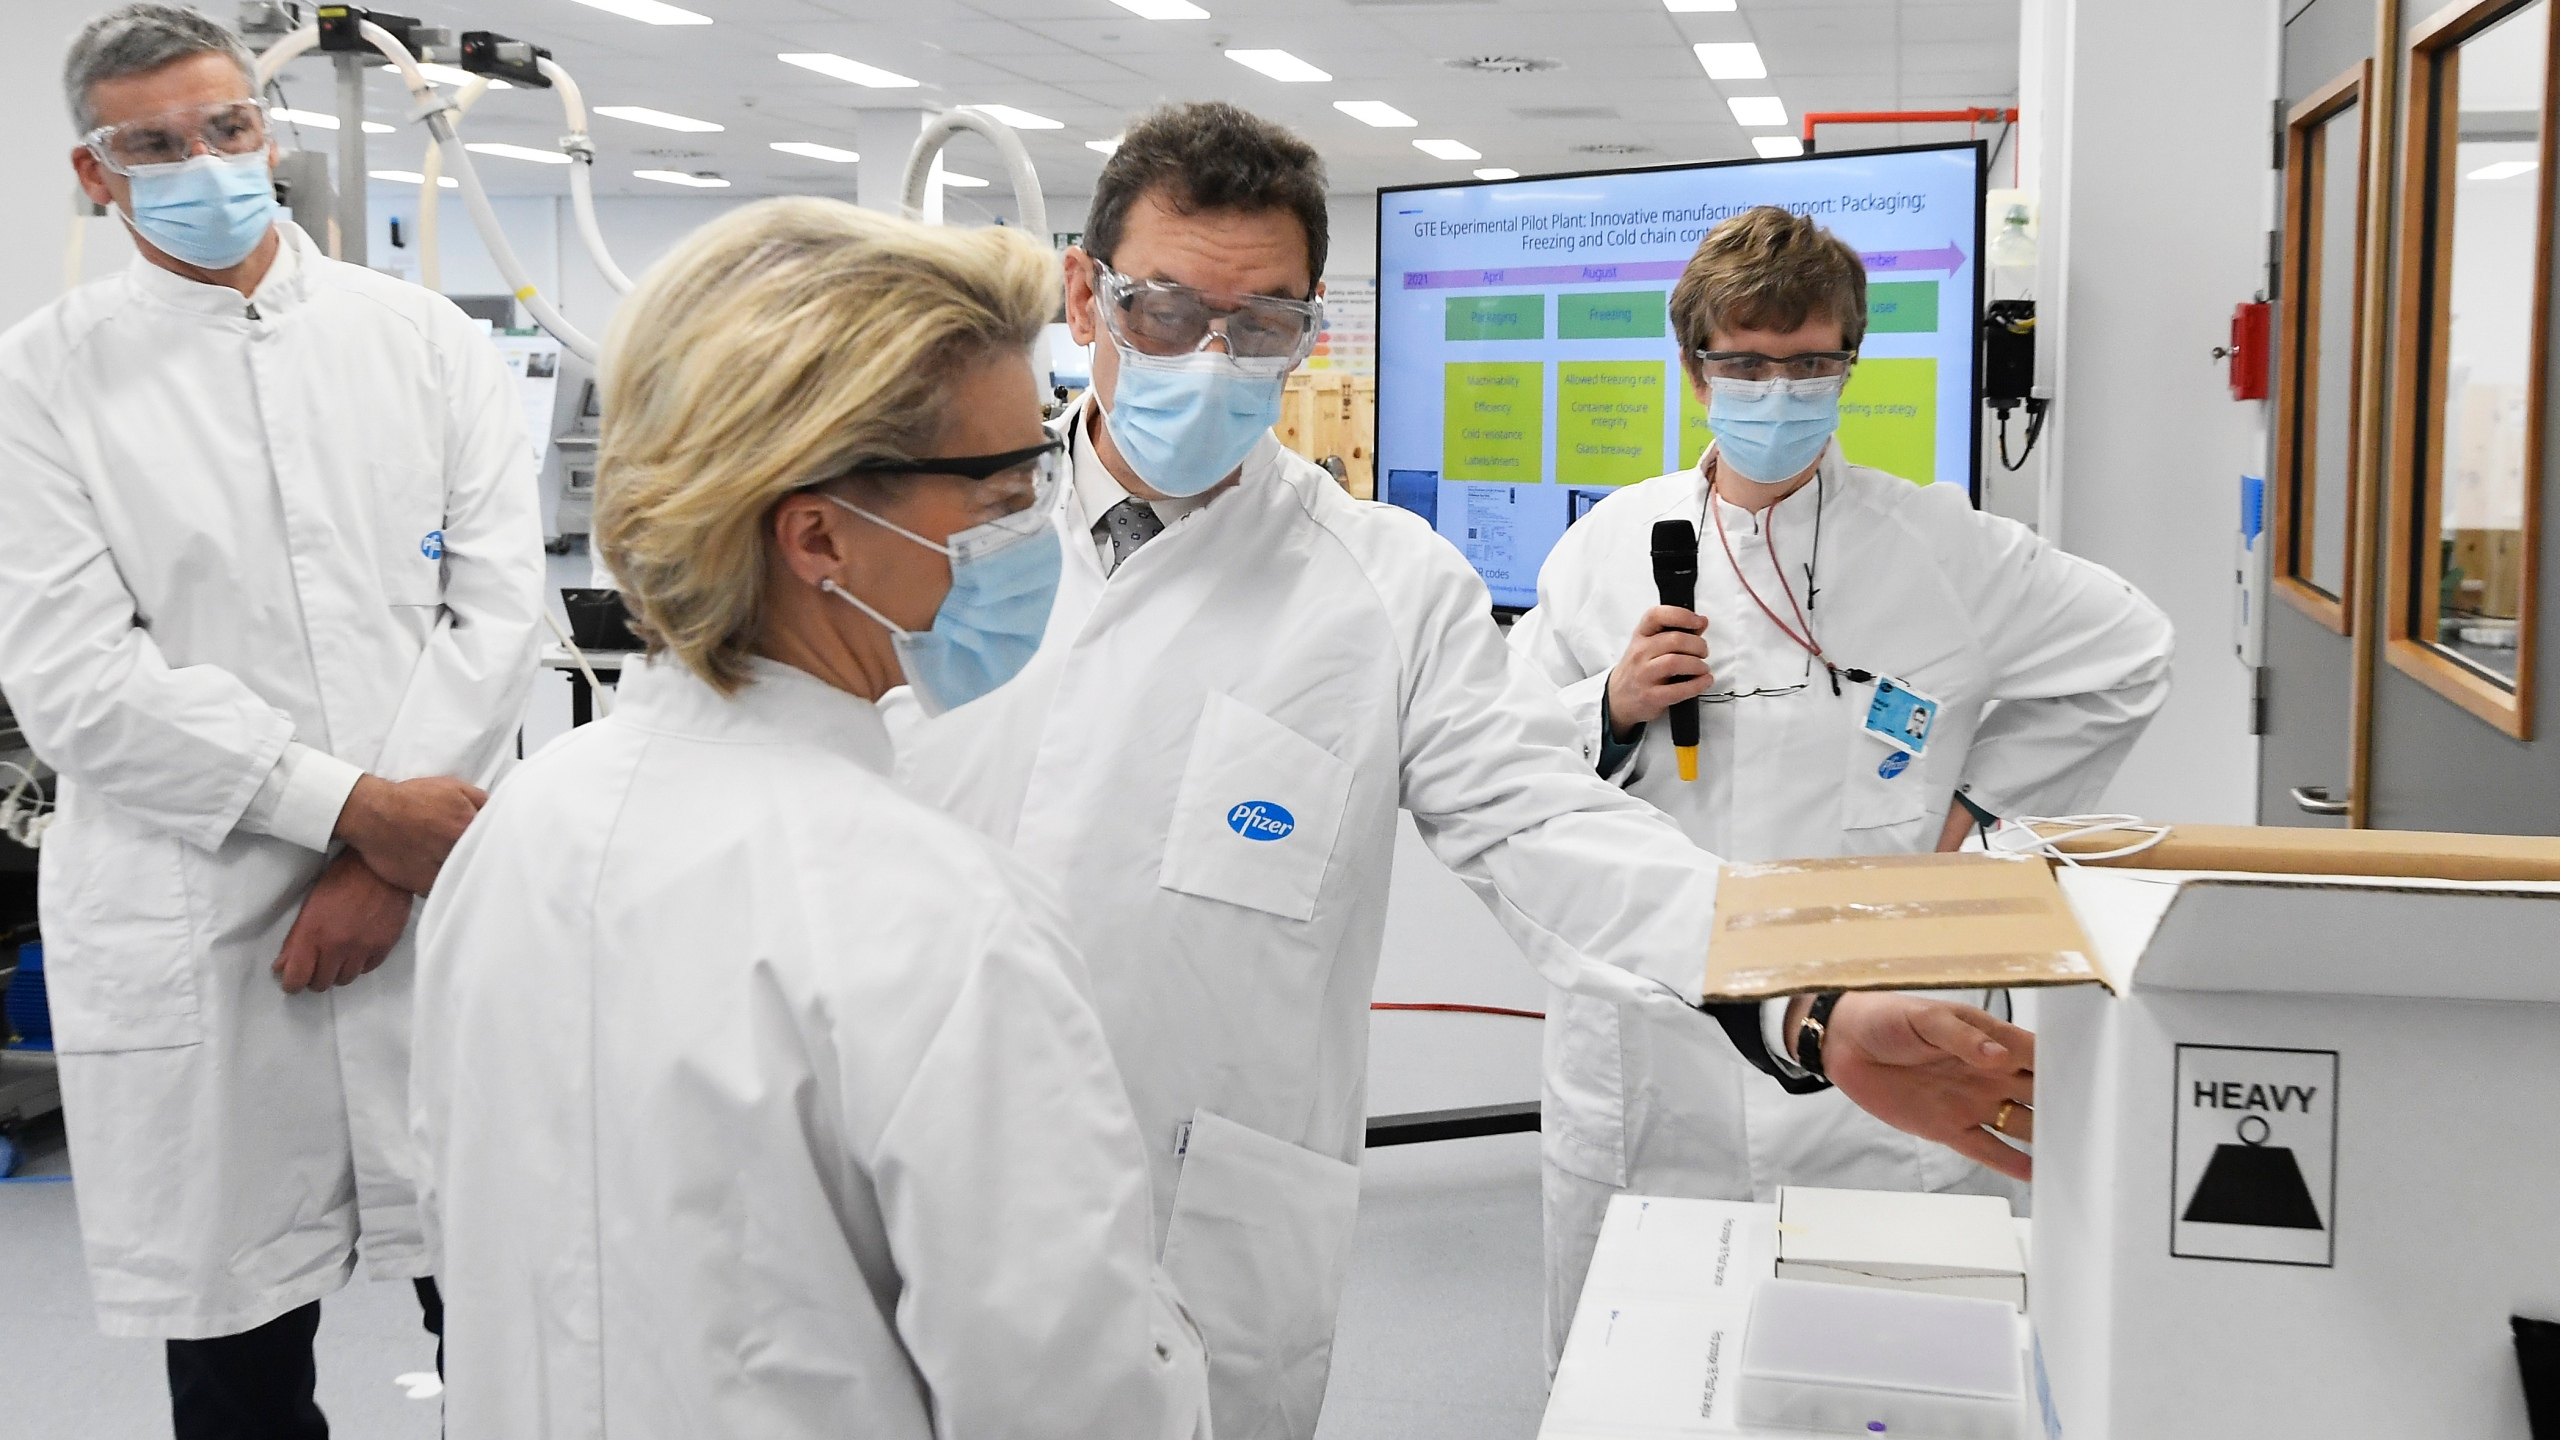 In this Friday, April 23, 2021 file photo, European Commission President Ursula von der Leyen, second left, speaks with Pfizer CEO Albert Bourla, center right, during an official visit to the Pfizer pharmaceutical company in Puurs, Belgium. (John Thys/Pool via AP, File)